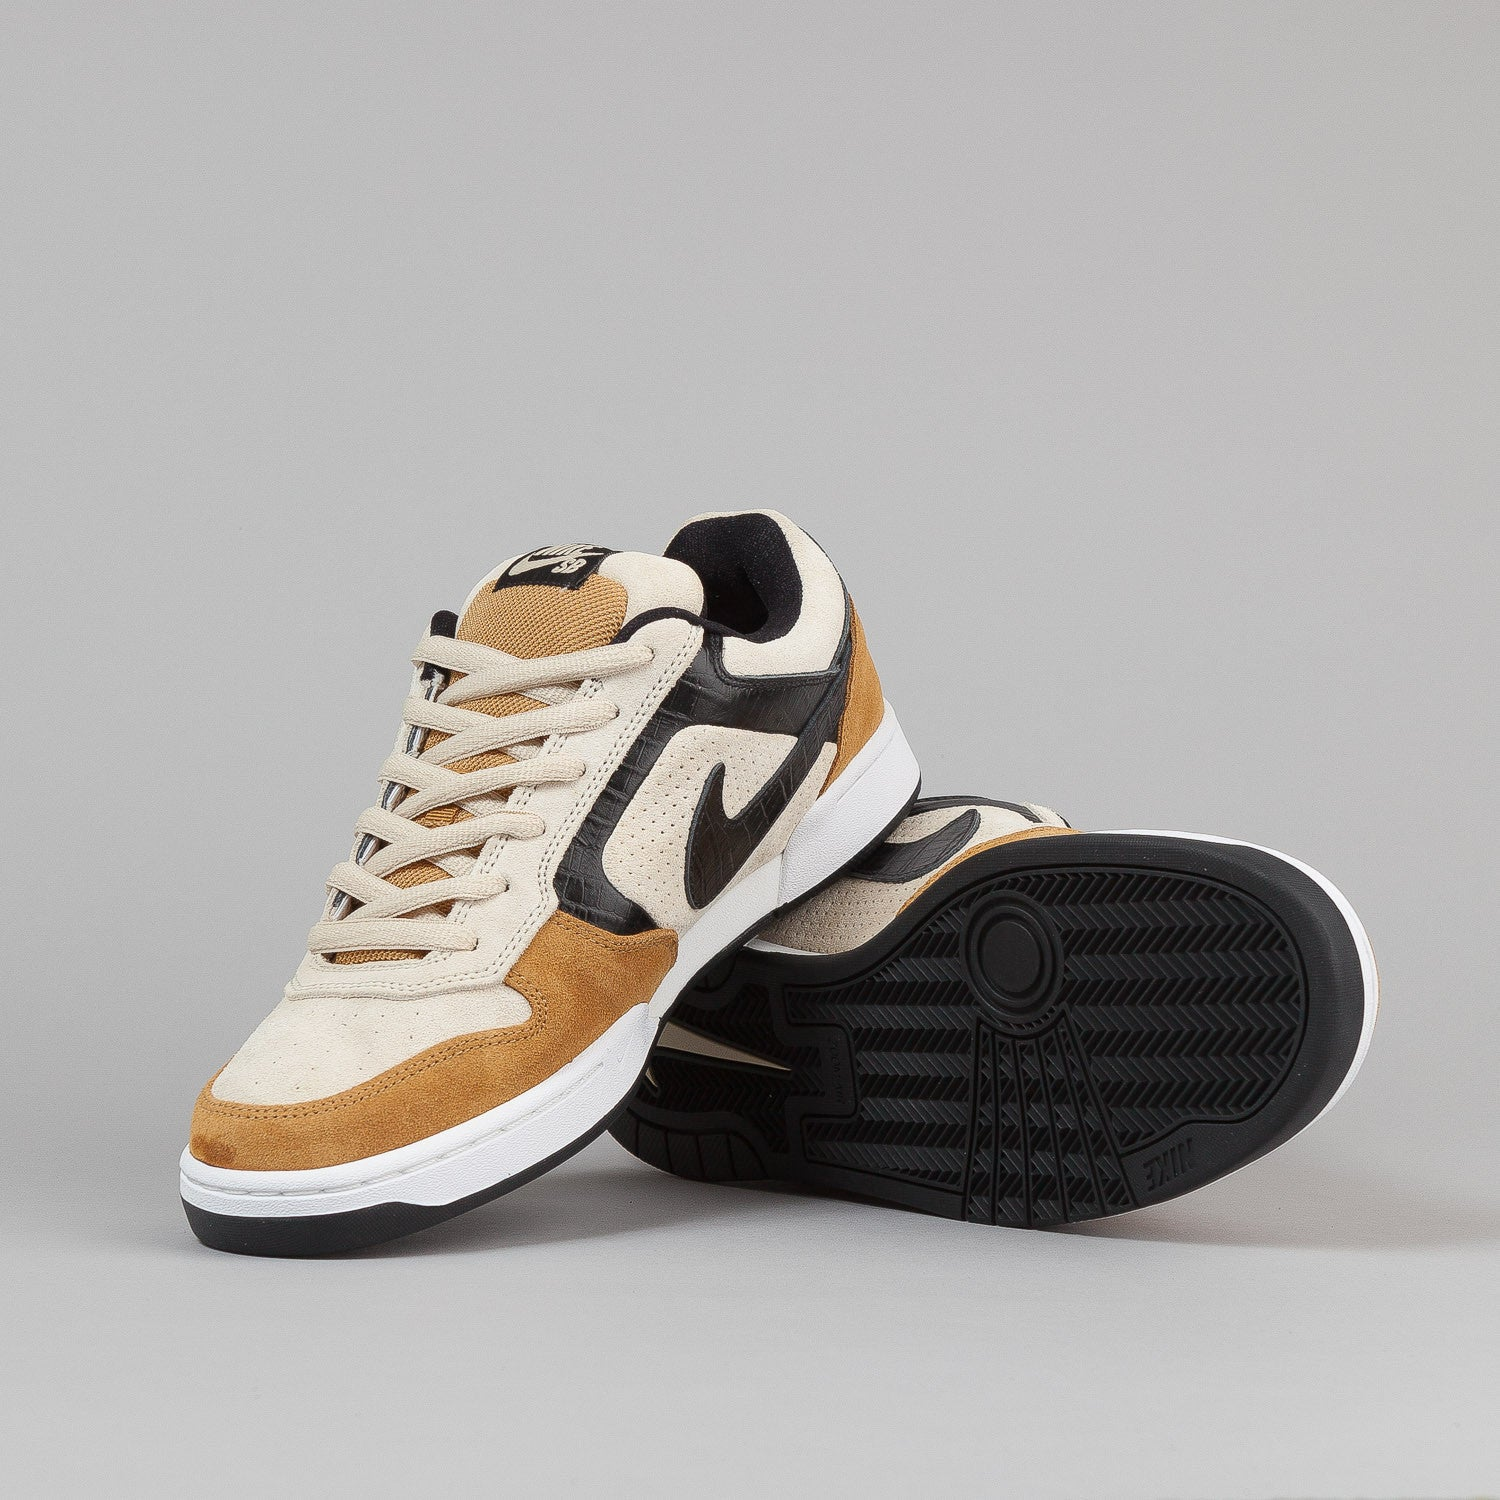 Nike SB Air Regime Shoes - Beach / Black